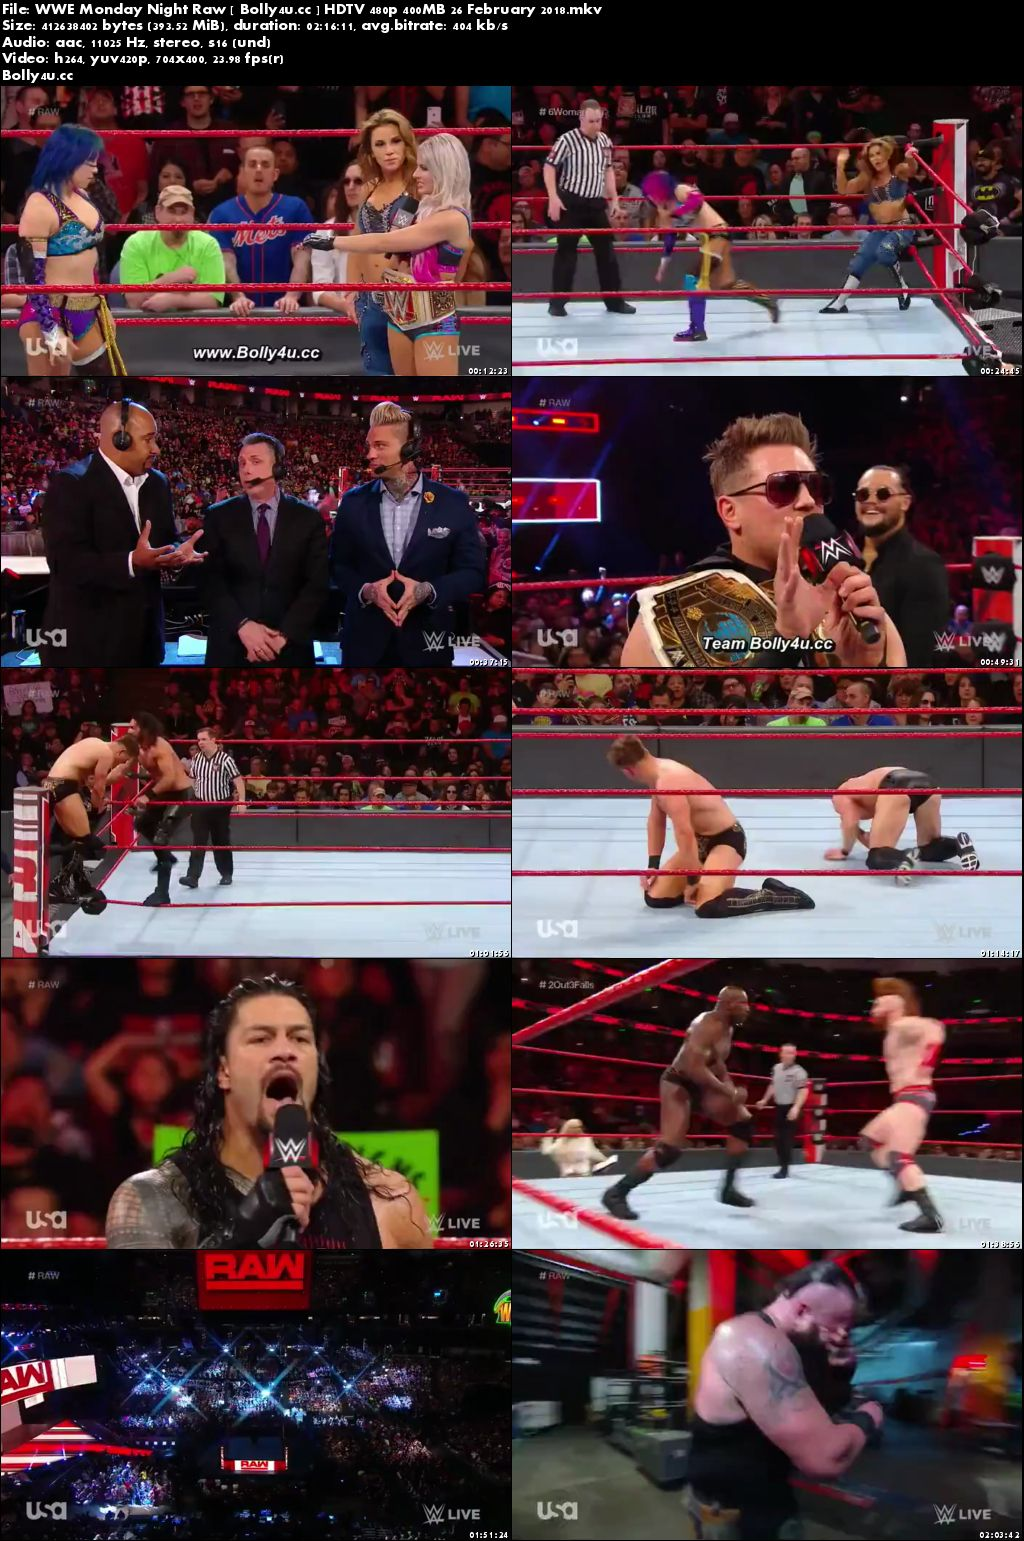 WWE Monday Night Raw HDTV 480p 400MB 26 February 2018 Download